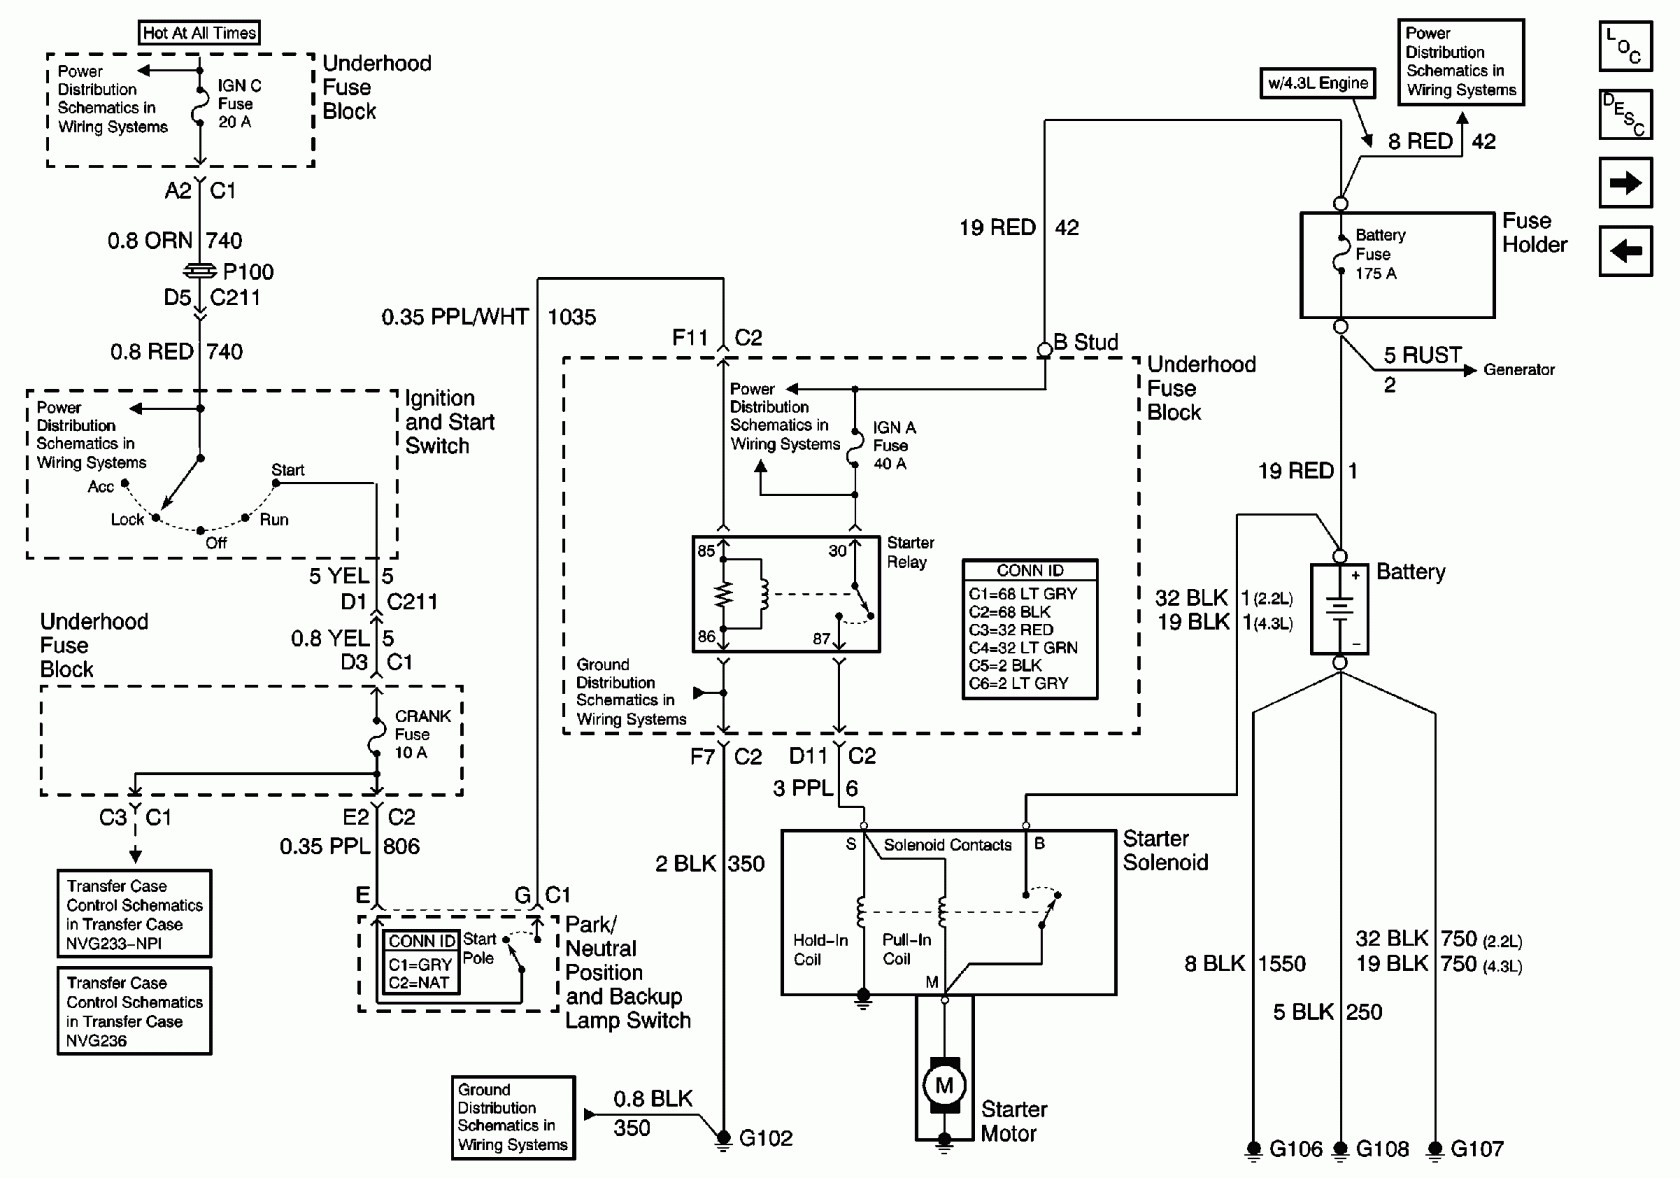 Cadillac Deville Factory Amp Wiring Diagram Elegant Cadillac Bose And Wiring Diagram Wiring Wiring Rh Mmanews Us Bluetooth Speaker Wiring Diagram Speaker Wiring Diagram M on 2000 Cadillac Deville Wiring Diagrams